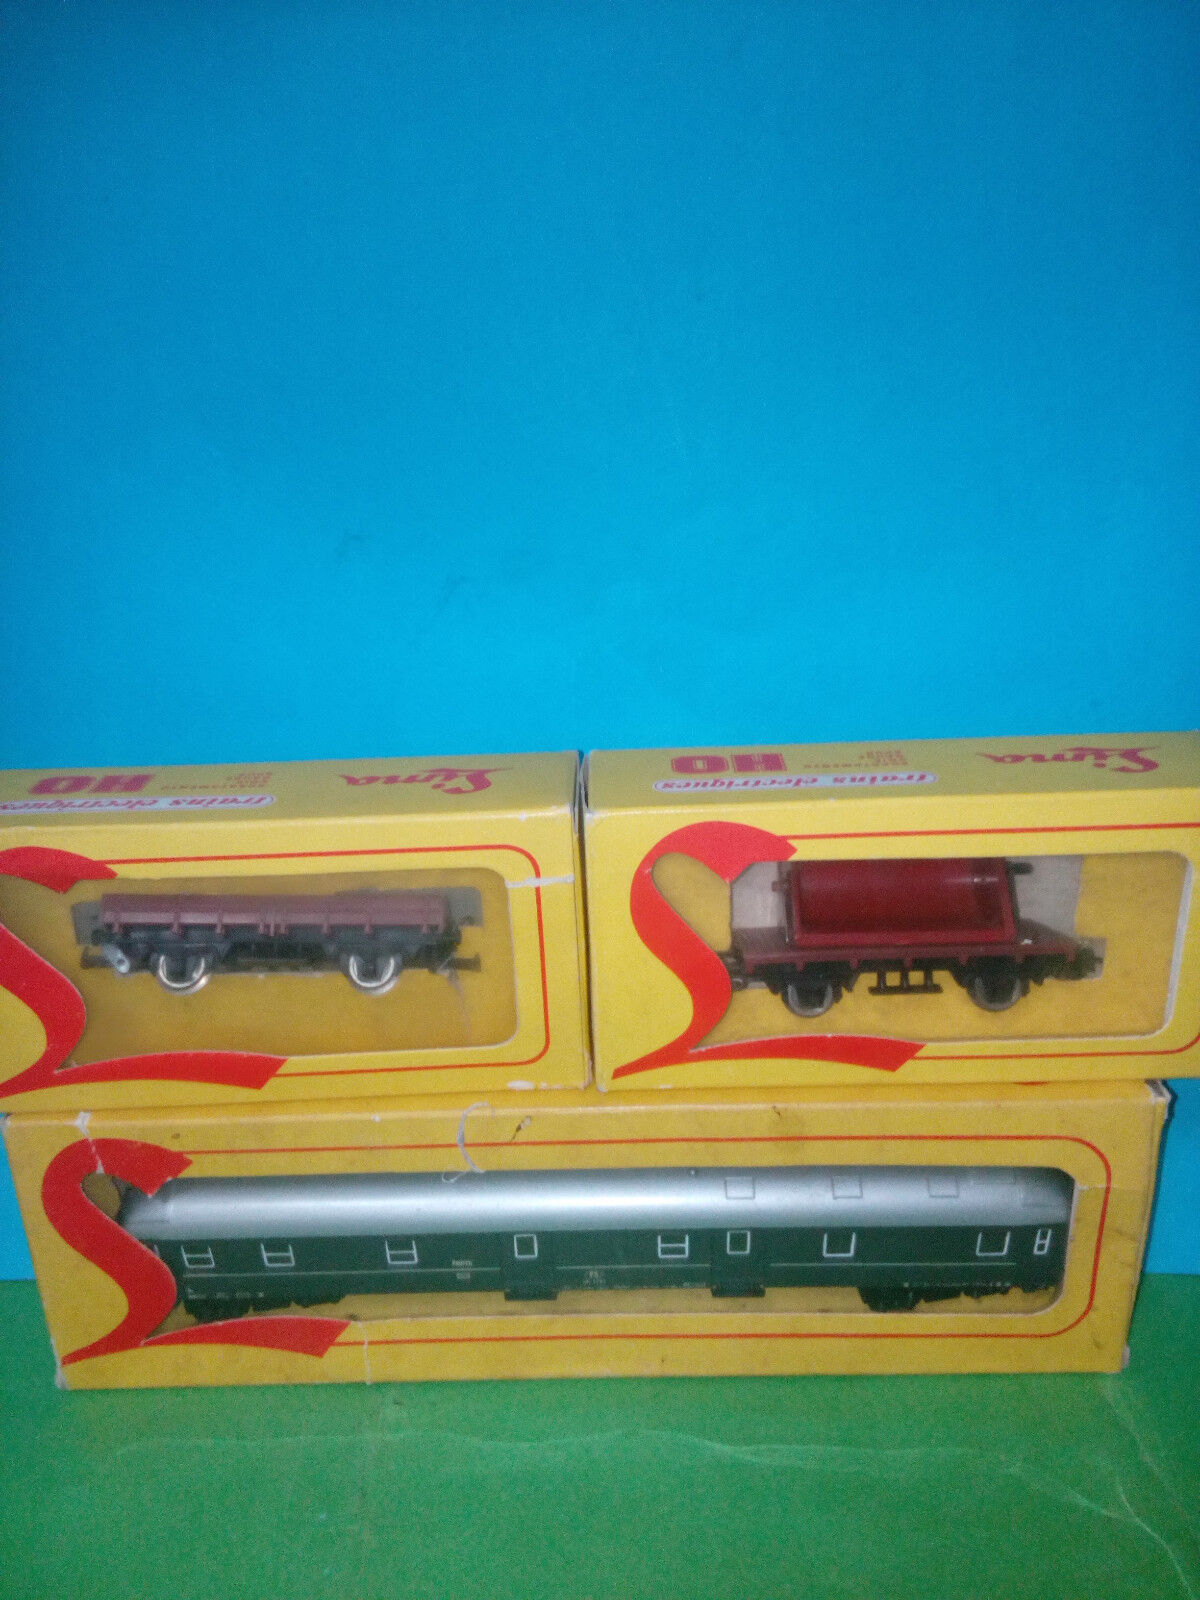 Lima carriage Postal + Freight Wagons years 60 HO